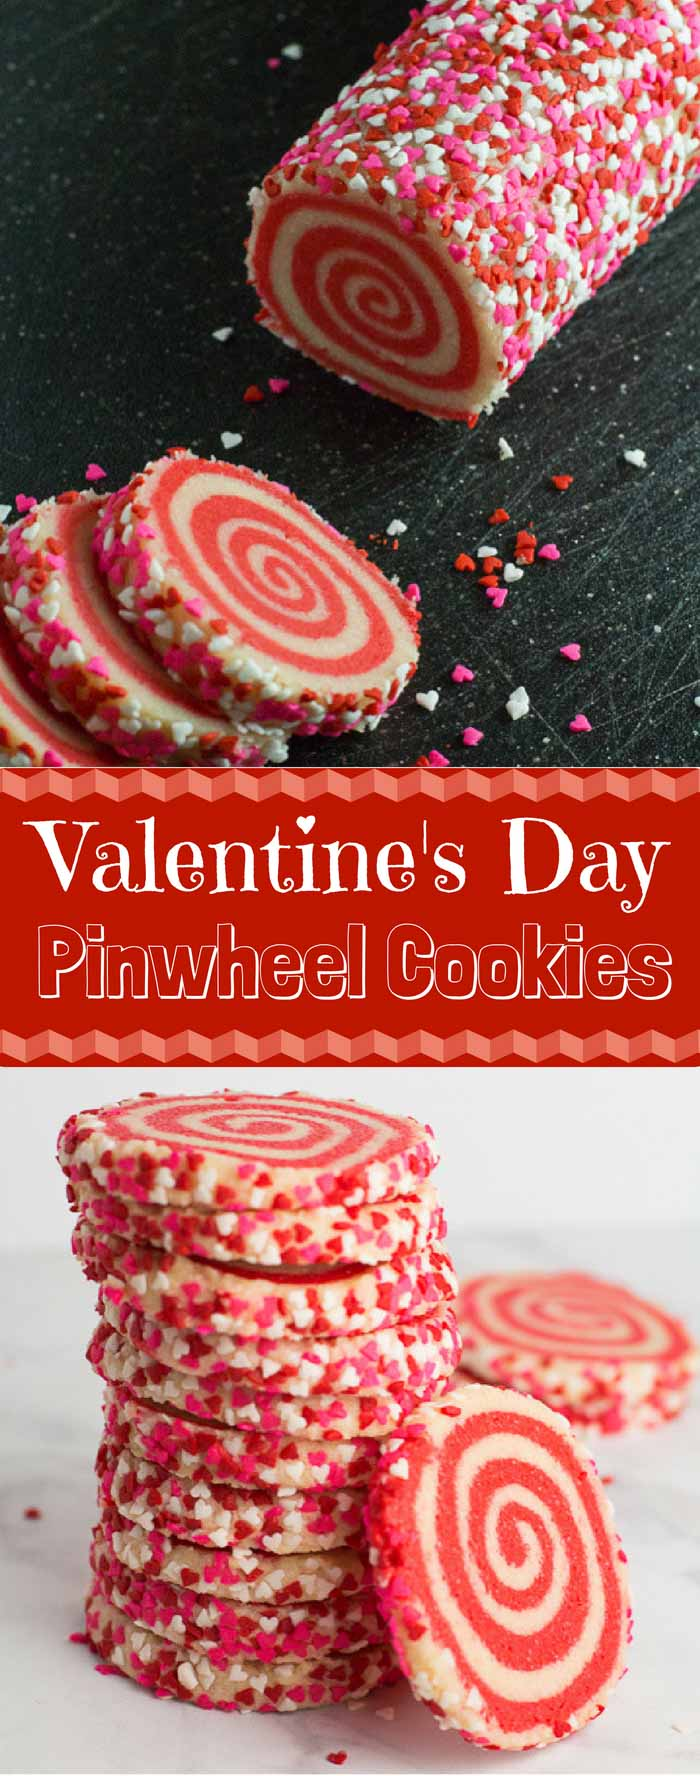 Feast your eyes on these Valentine's Day Pinwheel Cookies! The best part about this recipe? You can adapt this to any occasion and holiday! #valentinesdaybaking #pinwheelcookies #sugarcookies | bakedujour.com